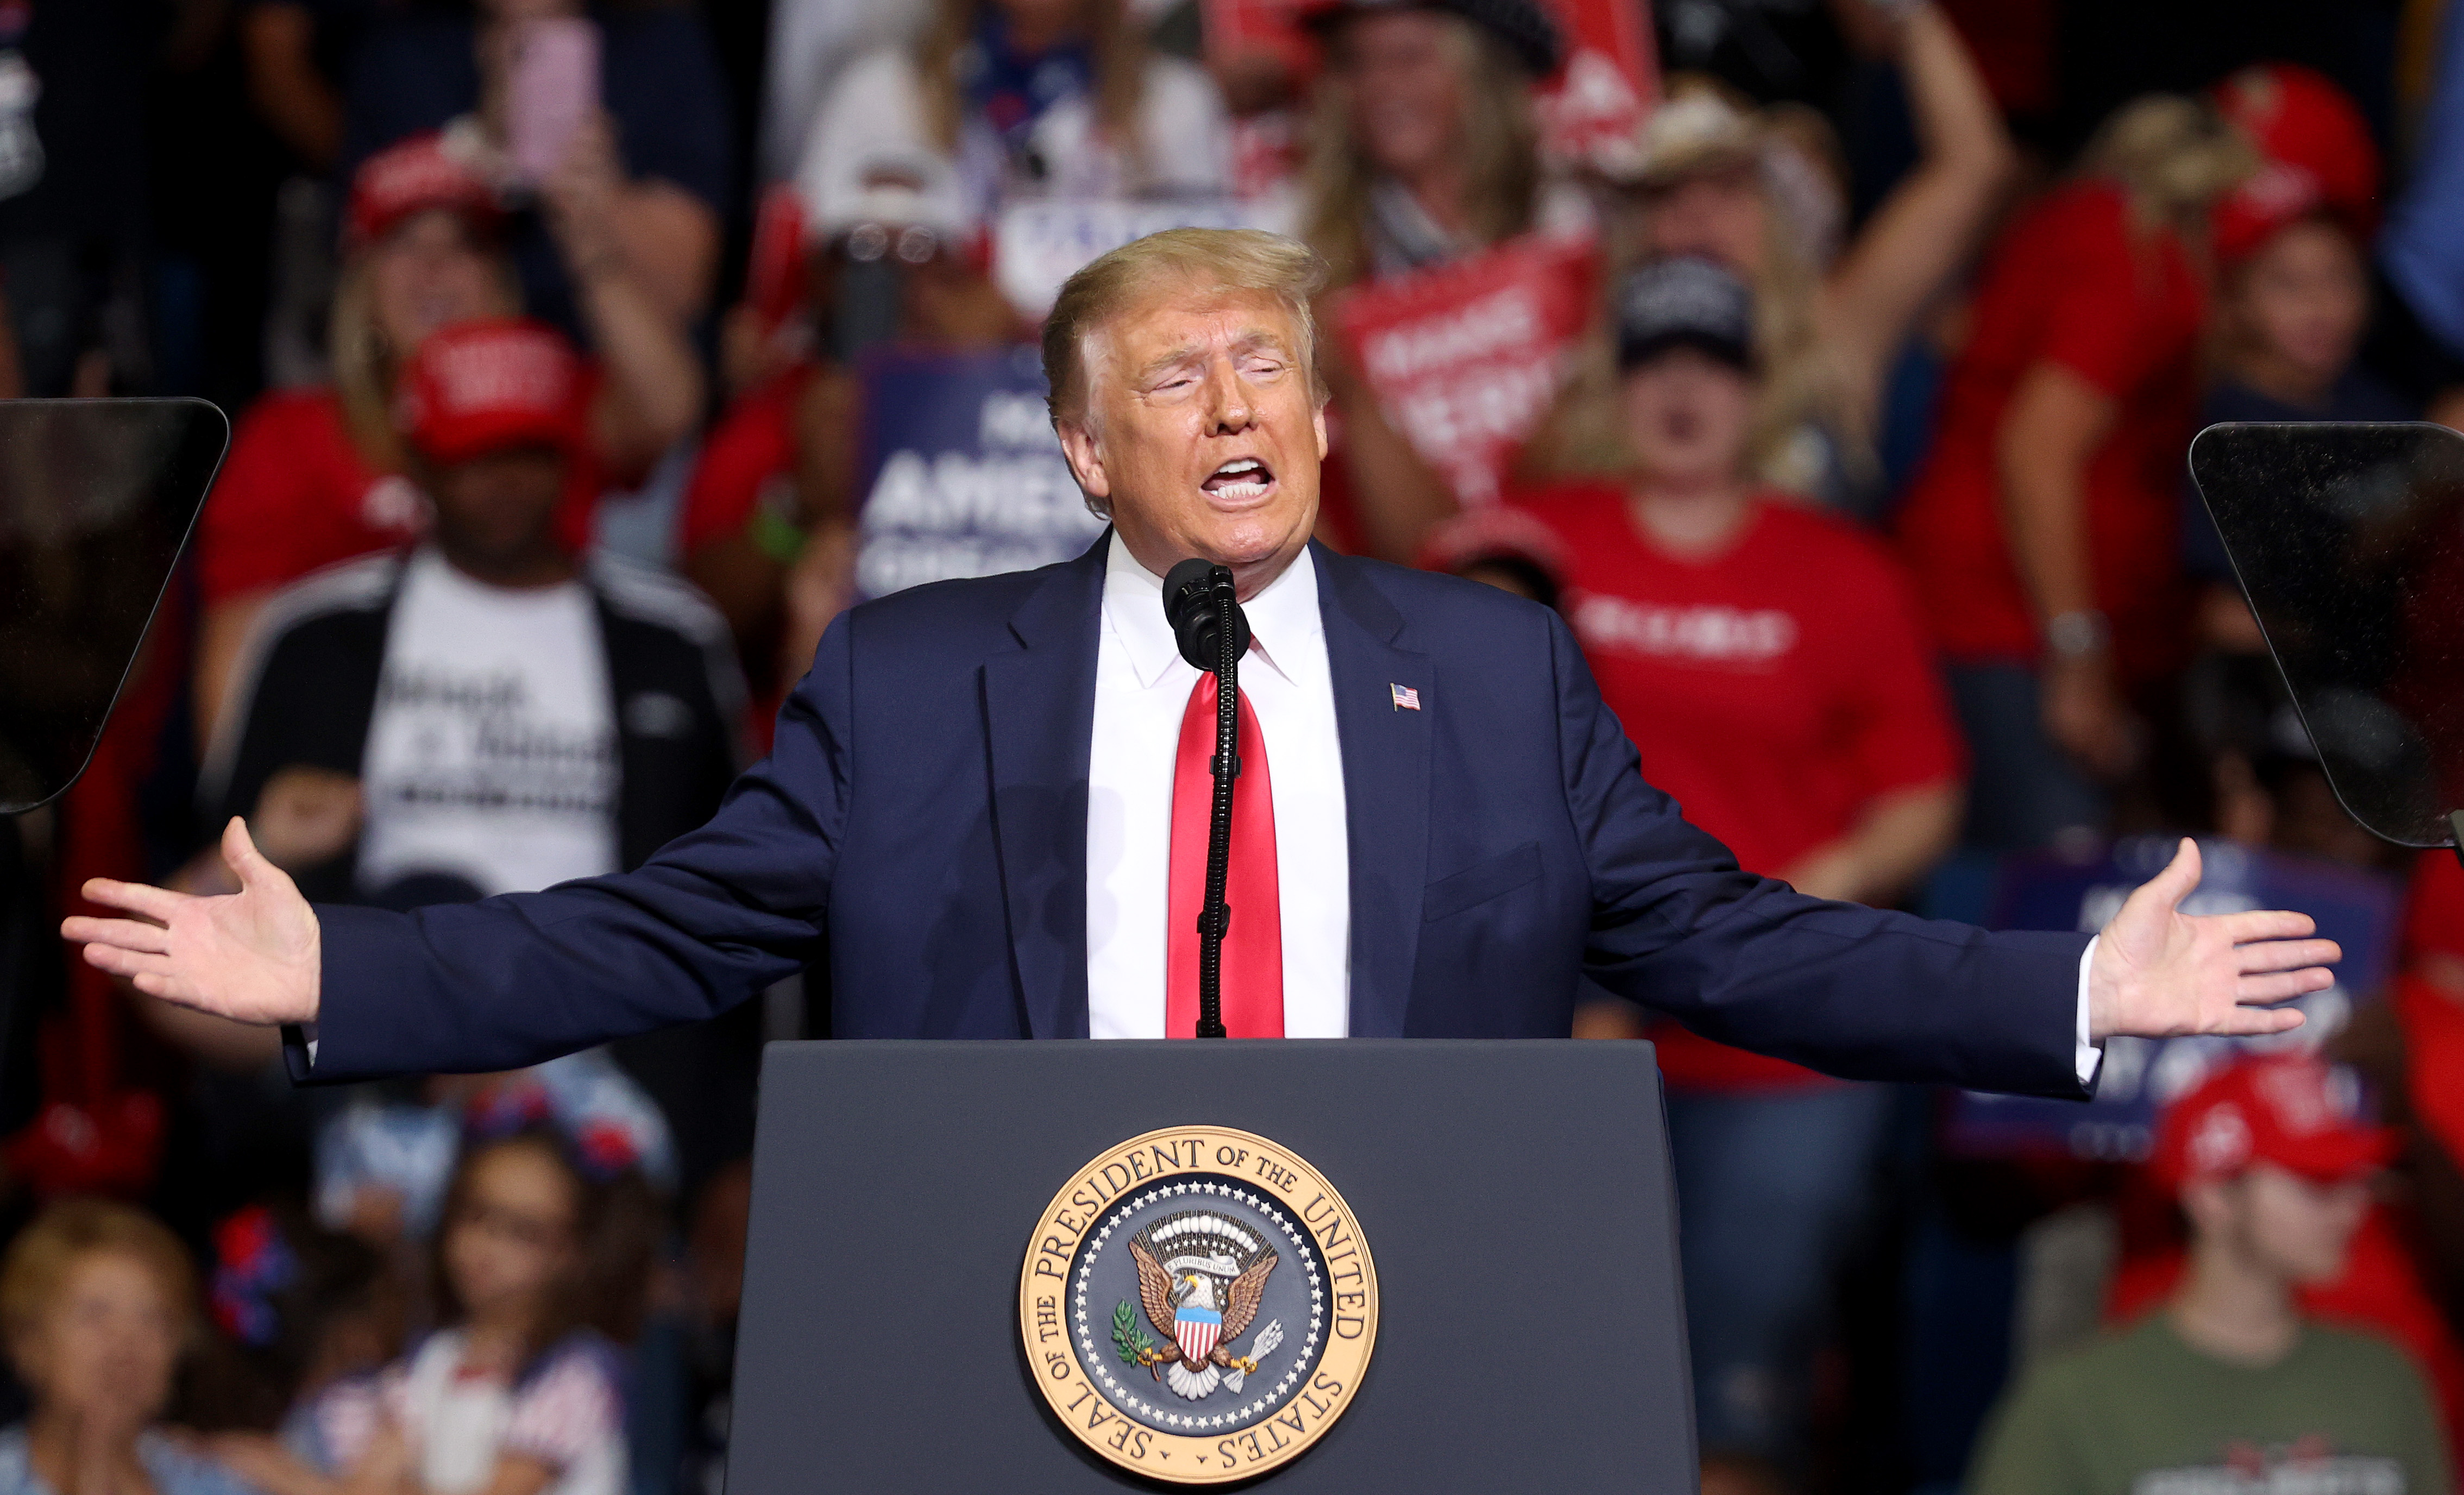 TULSA, OKLAHOMA - JUNE 20: U.S. President Donald Trump arrives at  a campaign rally at the BOK Center, June 20, 2020 in Tulsa, Oklahoma. Trump is holding his first political rally since the start of the coronavirus pandemic at the BOK Center today while infection rates in the state of Oklahoma continue to rise. (Photo by Win McNamee/Getty Images)